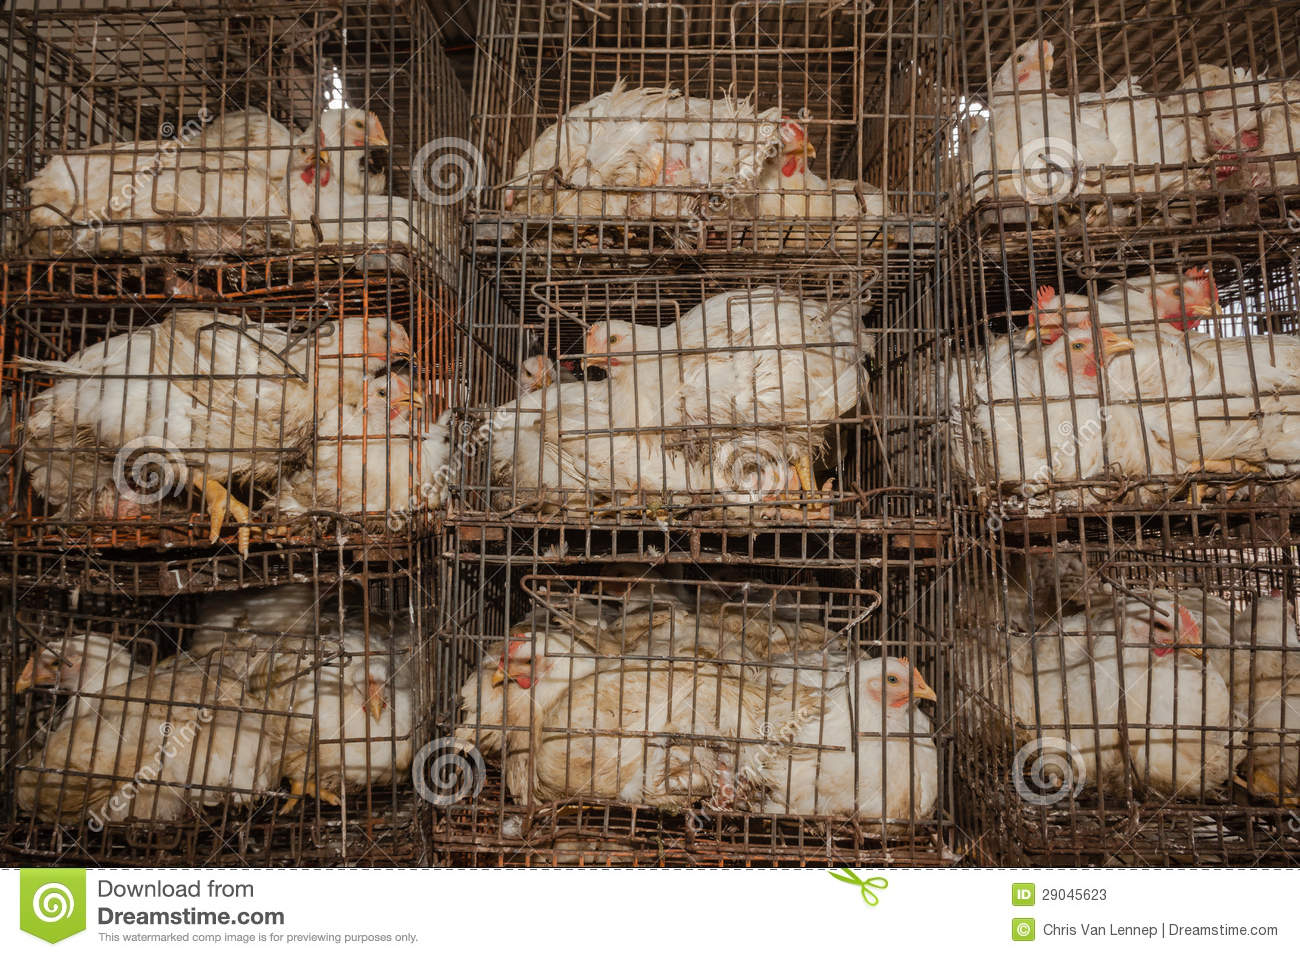 chickens cages abattoir stock photos image 29045623 chicken clip art pictures chicken clipart art